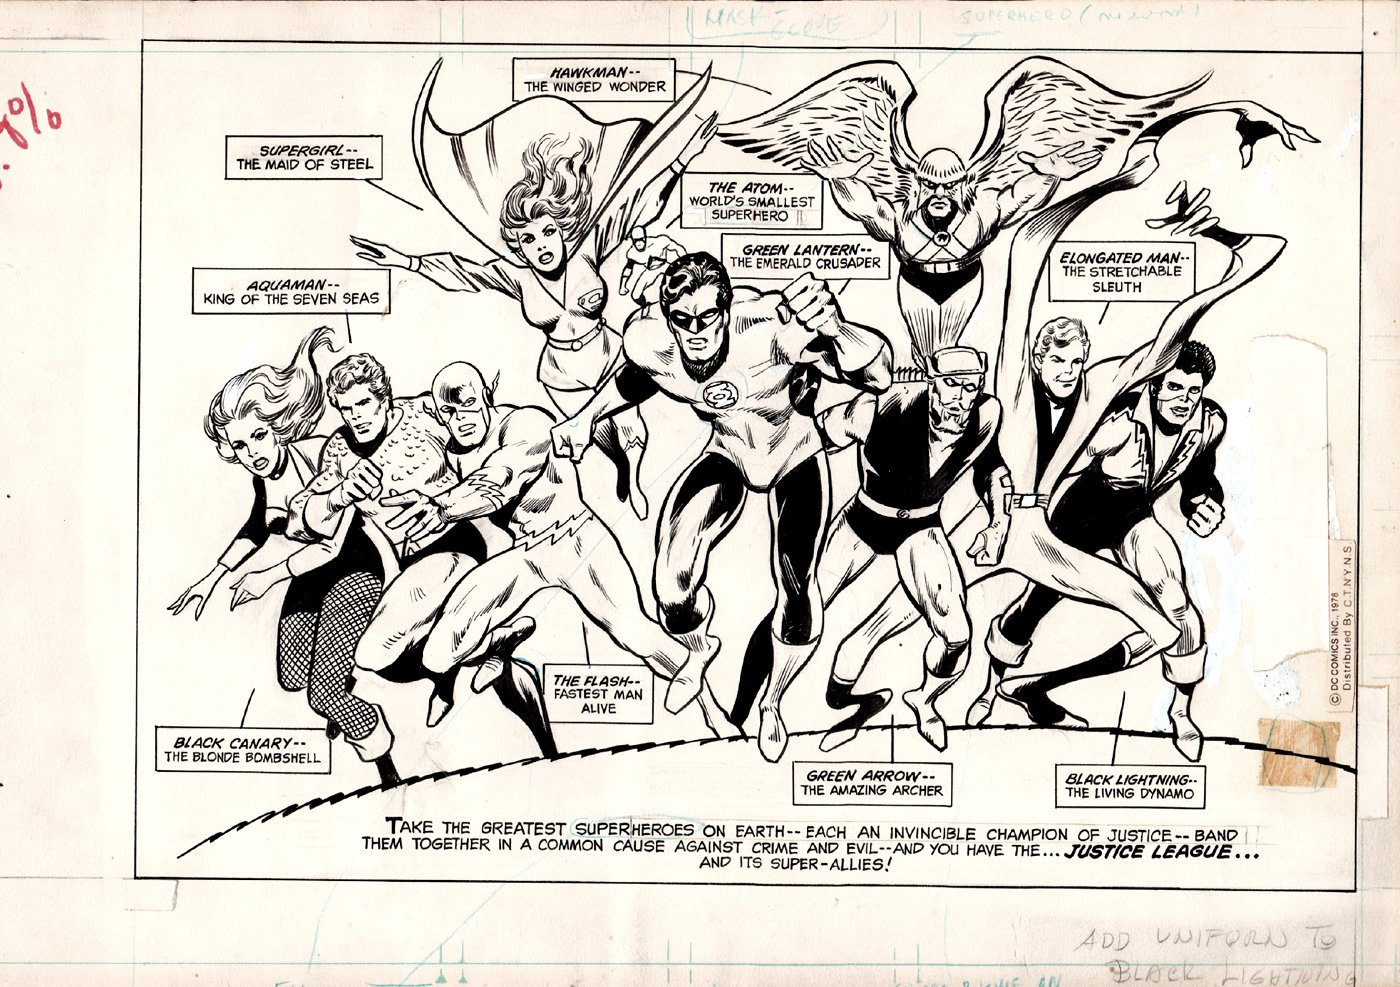 World's Greatest Superheroes Illustration To Get The Newspaper Strip Syndicated (VERY HISTORIC!) Early 1978